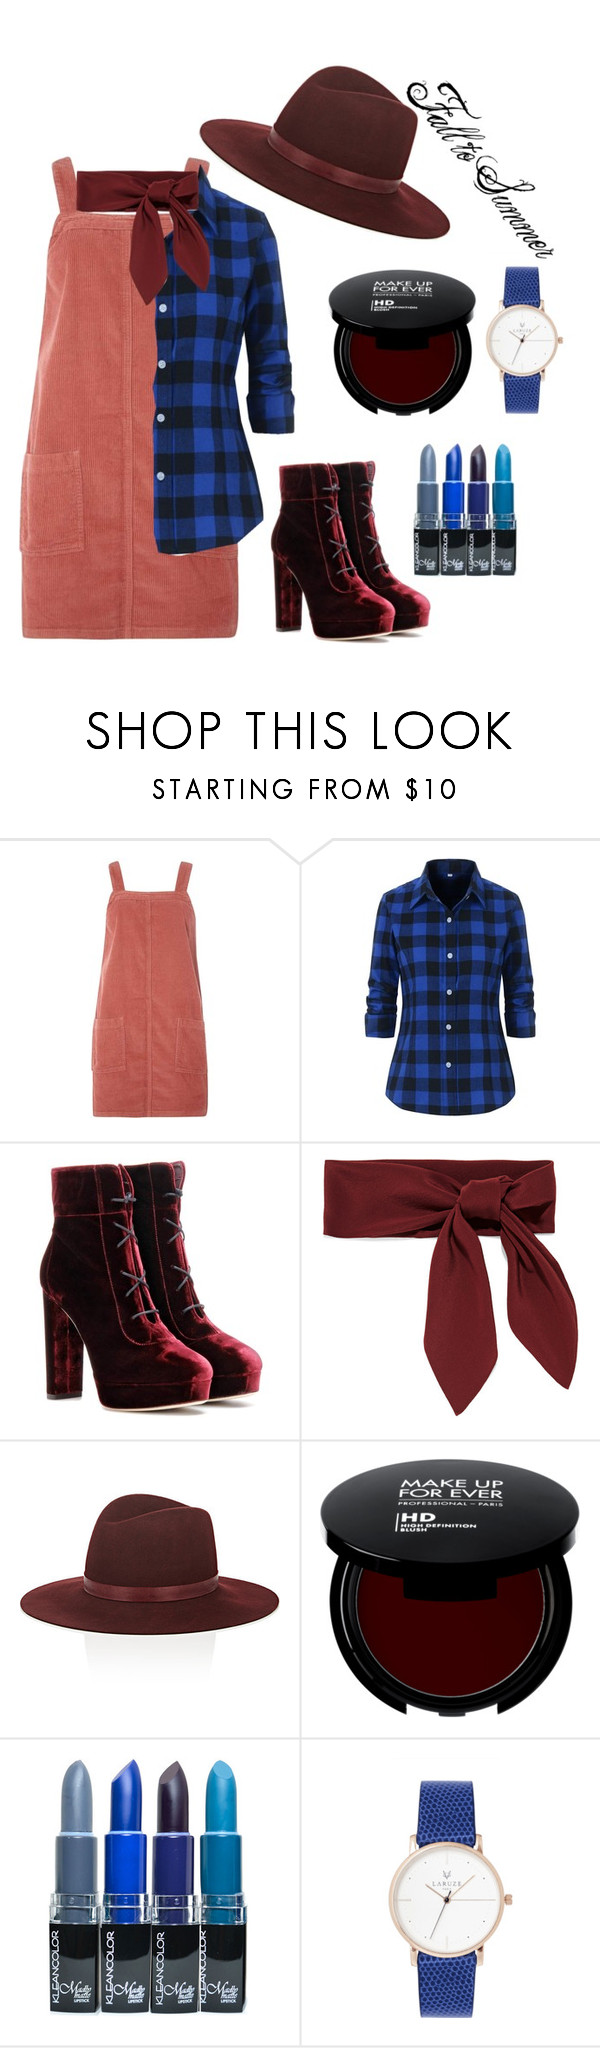 """""""Fall to Summer"""" by devin-10 on Polyvore featuring Dorothy Perkins, Jimmy Choo, Chloé and Janessa Leone"""